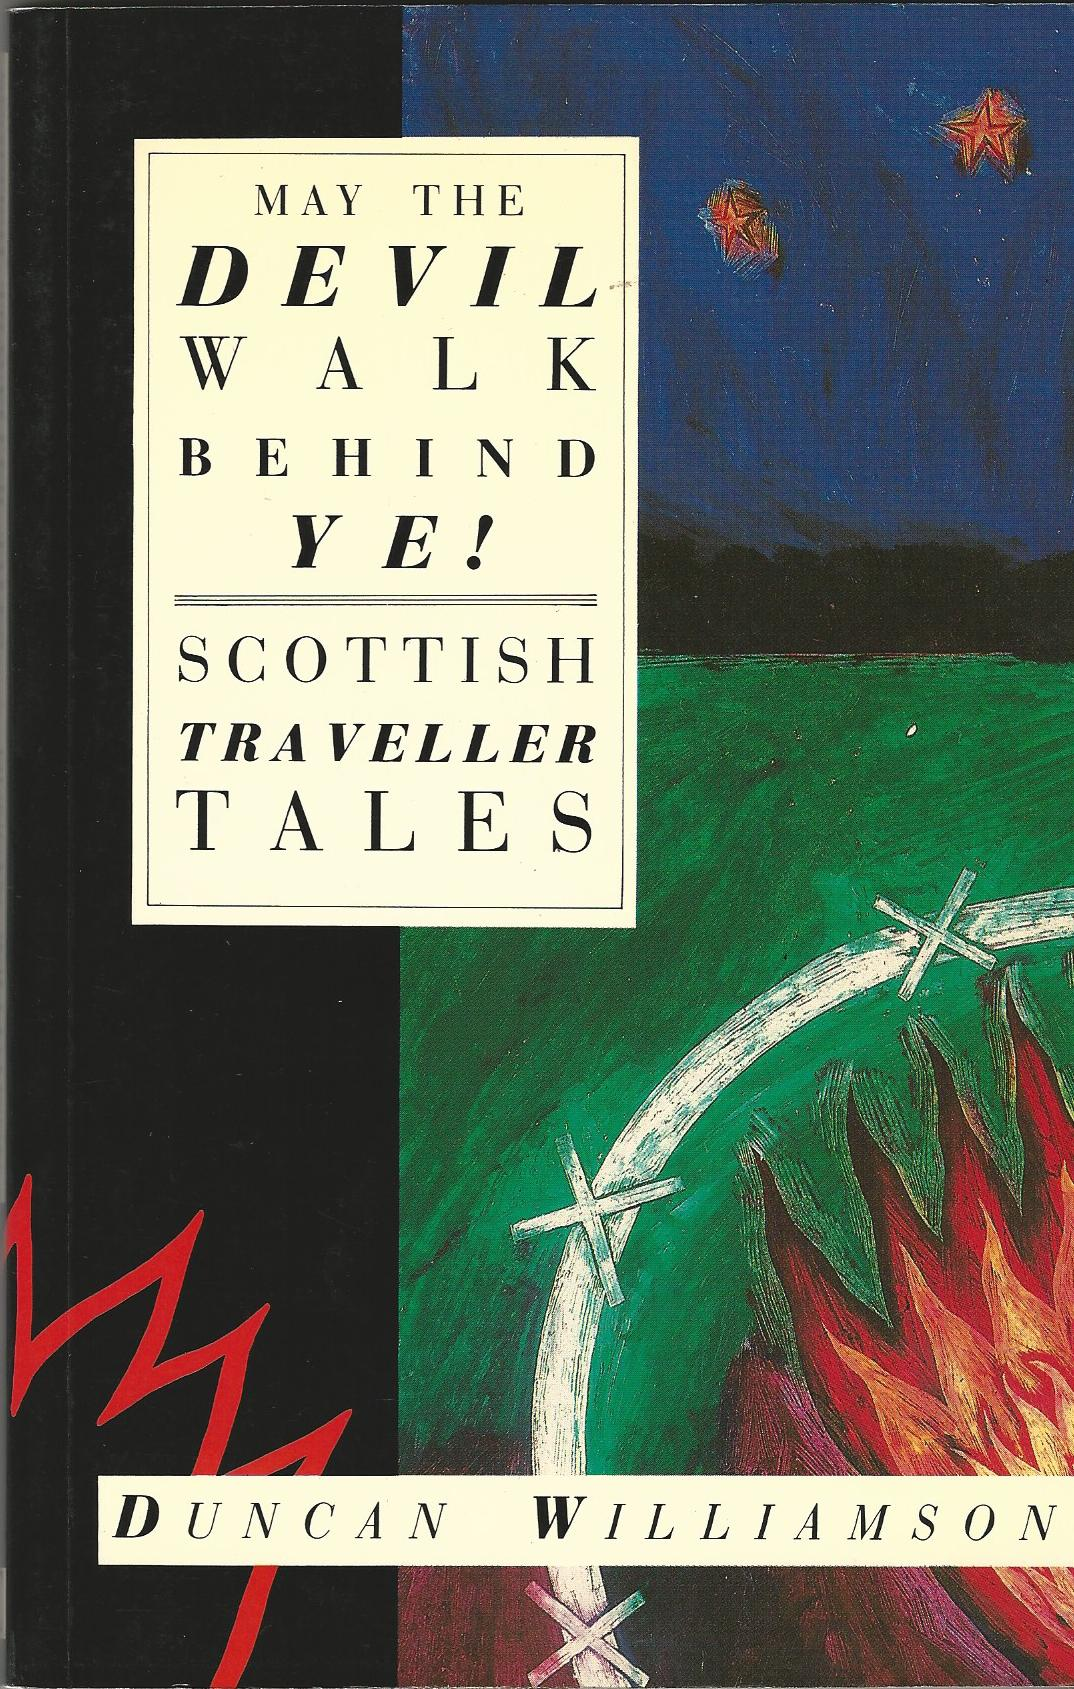 Image for May The Devil Walk Behind Ye!: Scottish Traveller Tales.